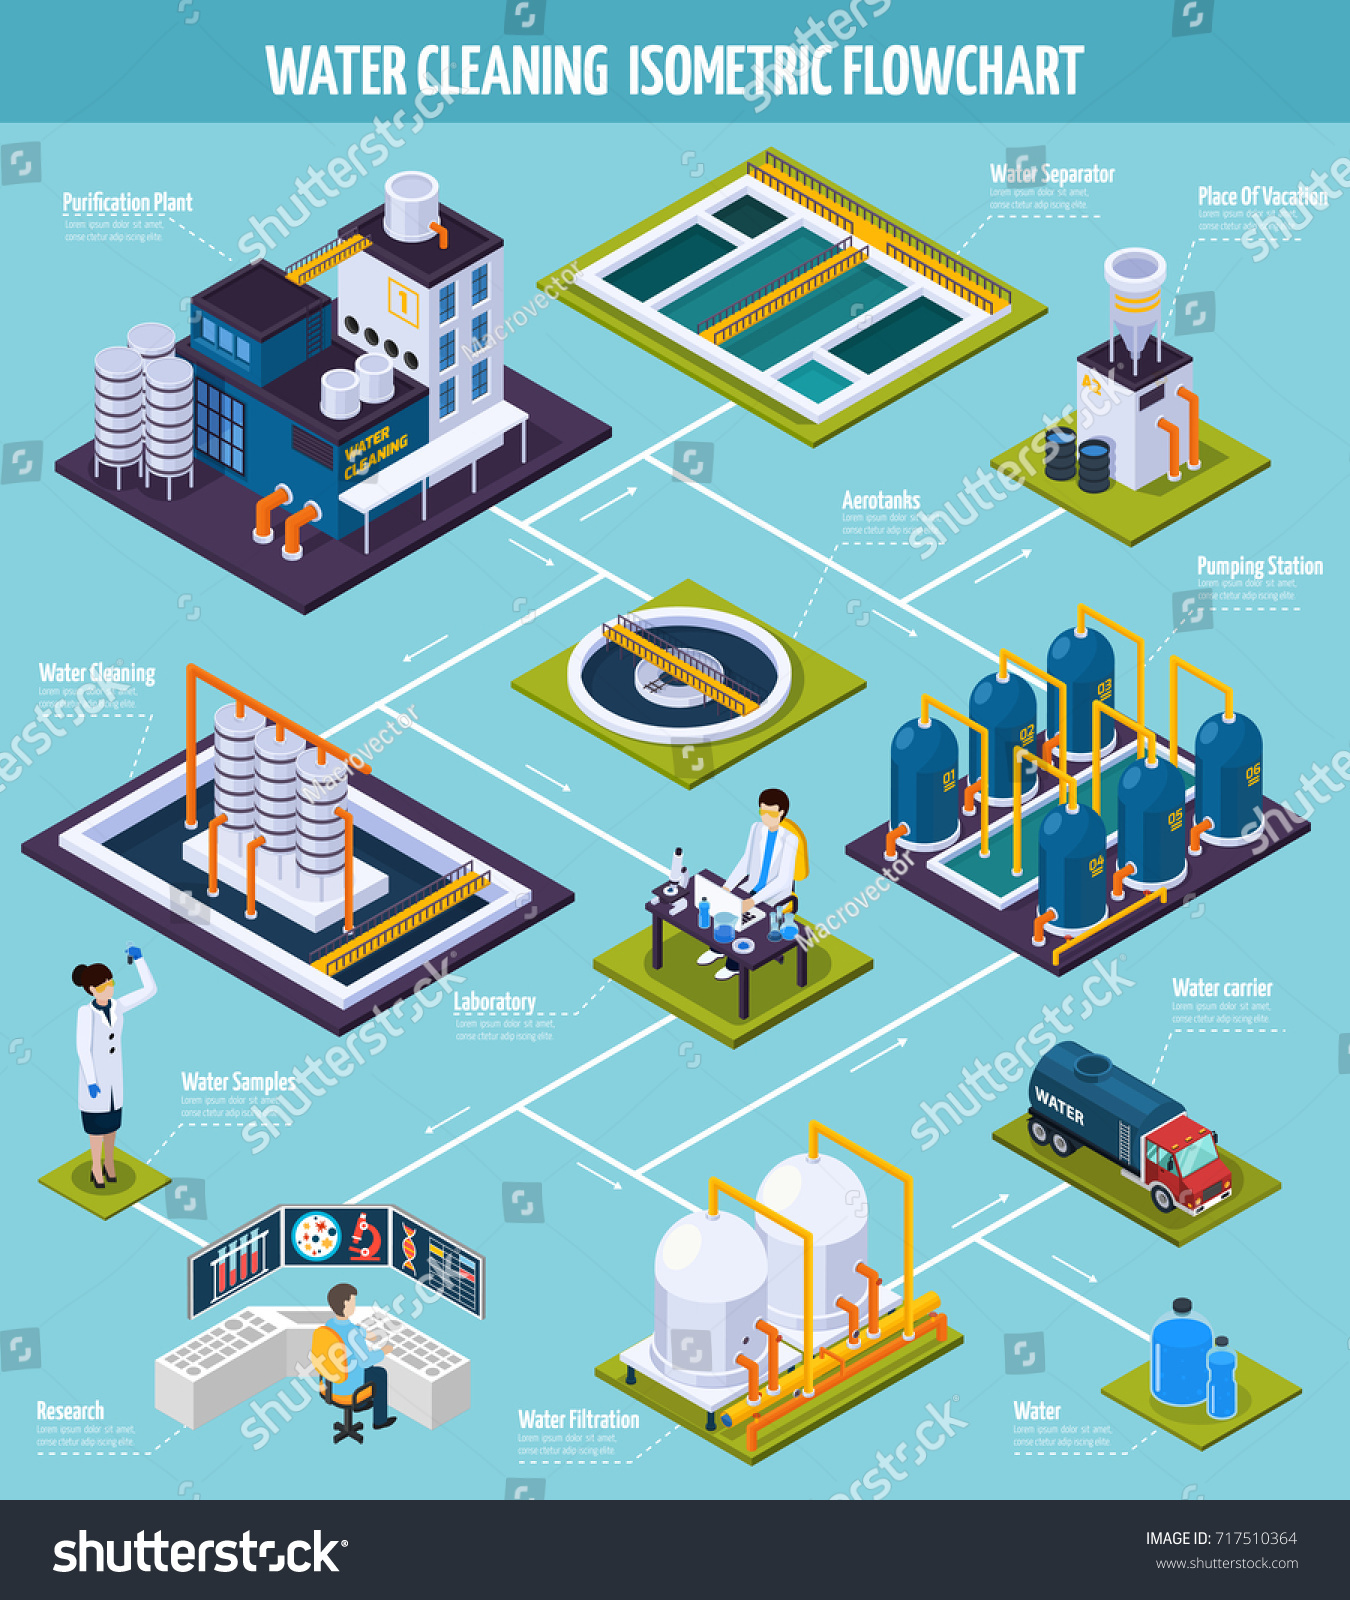 Water Cleaning Isometric Flowchart Purification Plant Stock Vector